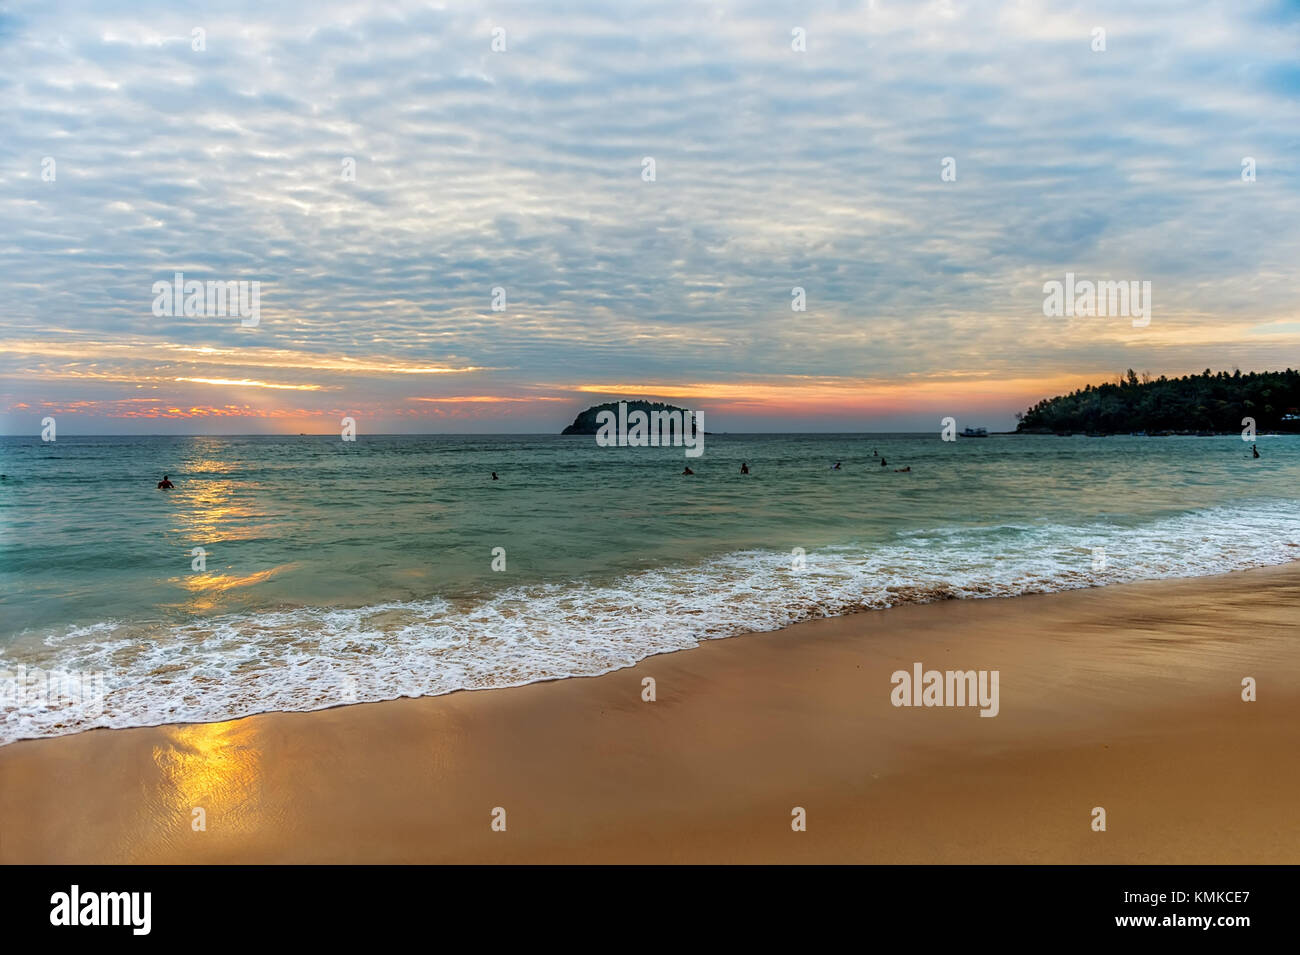 The beautiful scenery of the ocean at sunset with a wave on the shore. The horizontal frame. - Stock Image